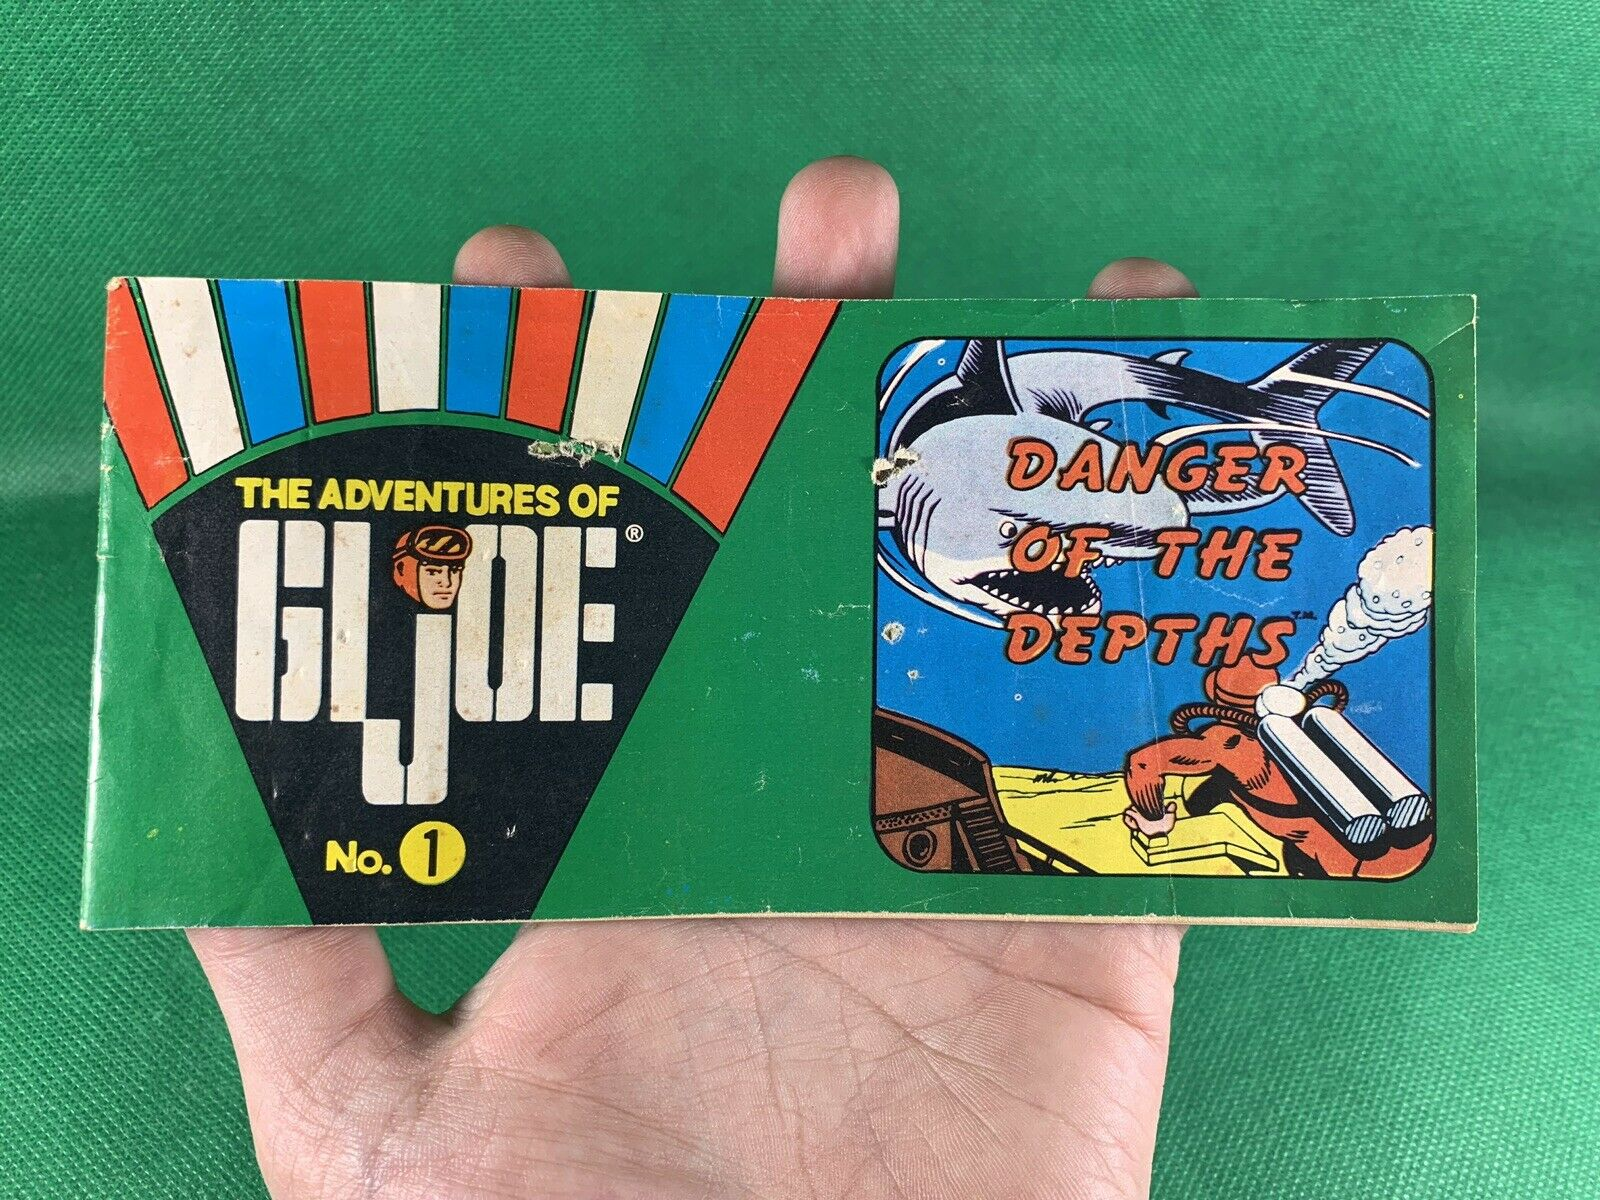 VINTAGE 1964 GI JOE -- 1970 DANGER OF THE DEPTHS MINI COMIC BOOK